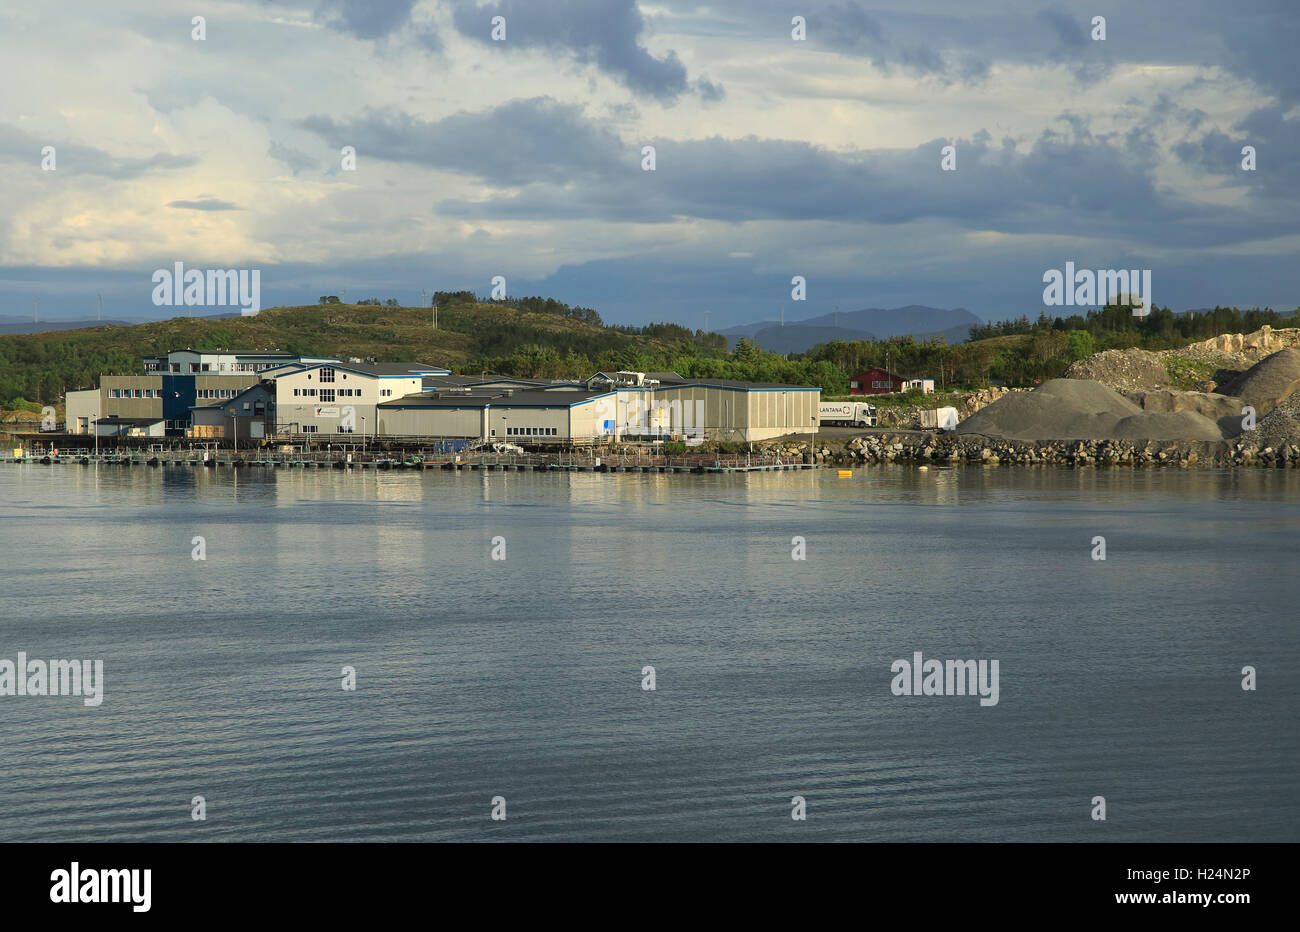 Quarrying industry Rorvik in the municipality of Vikna in Nord-Trondelag county, Norway - Stock Image